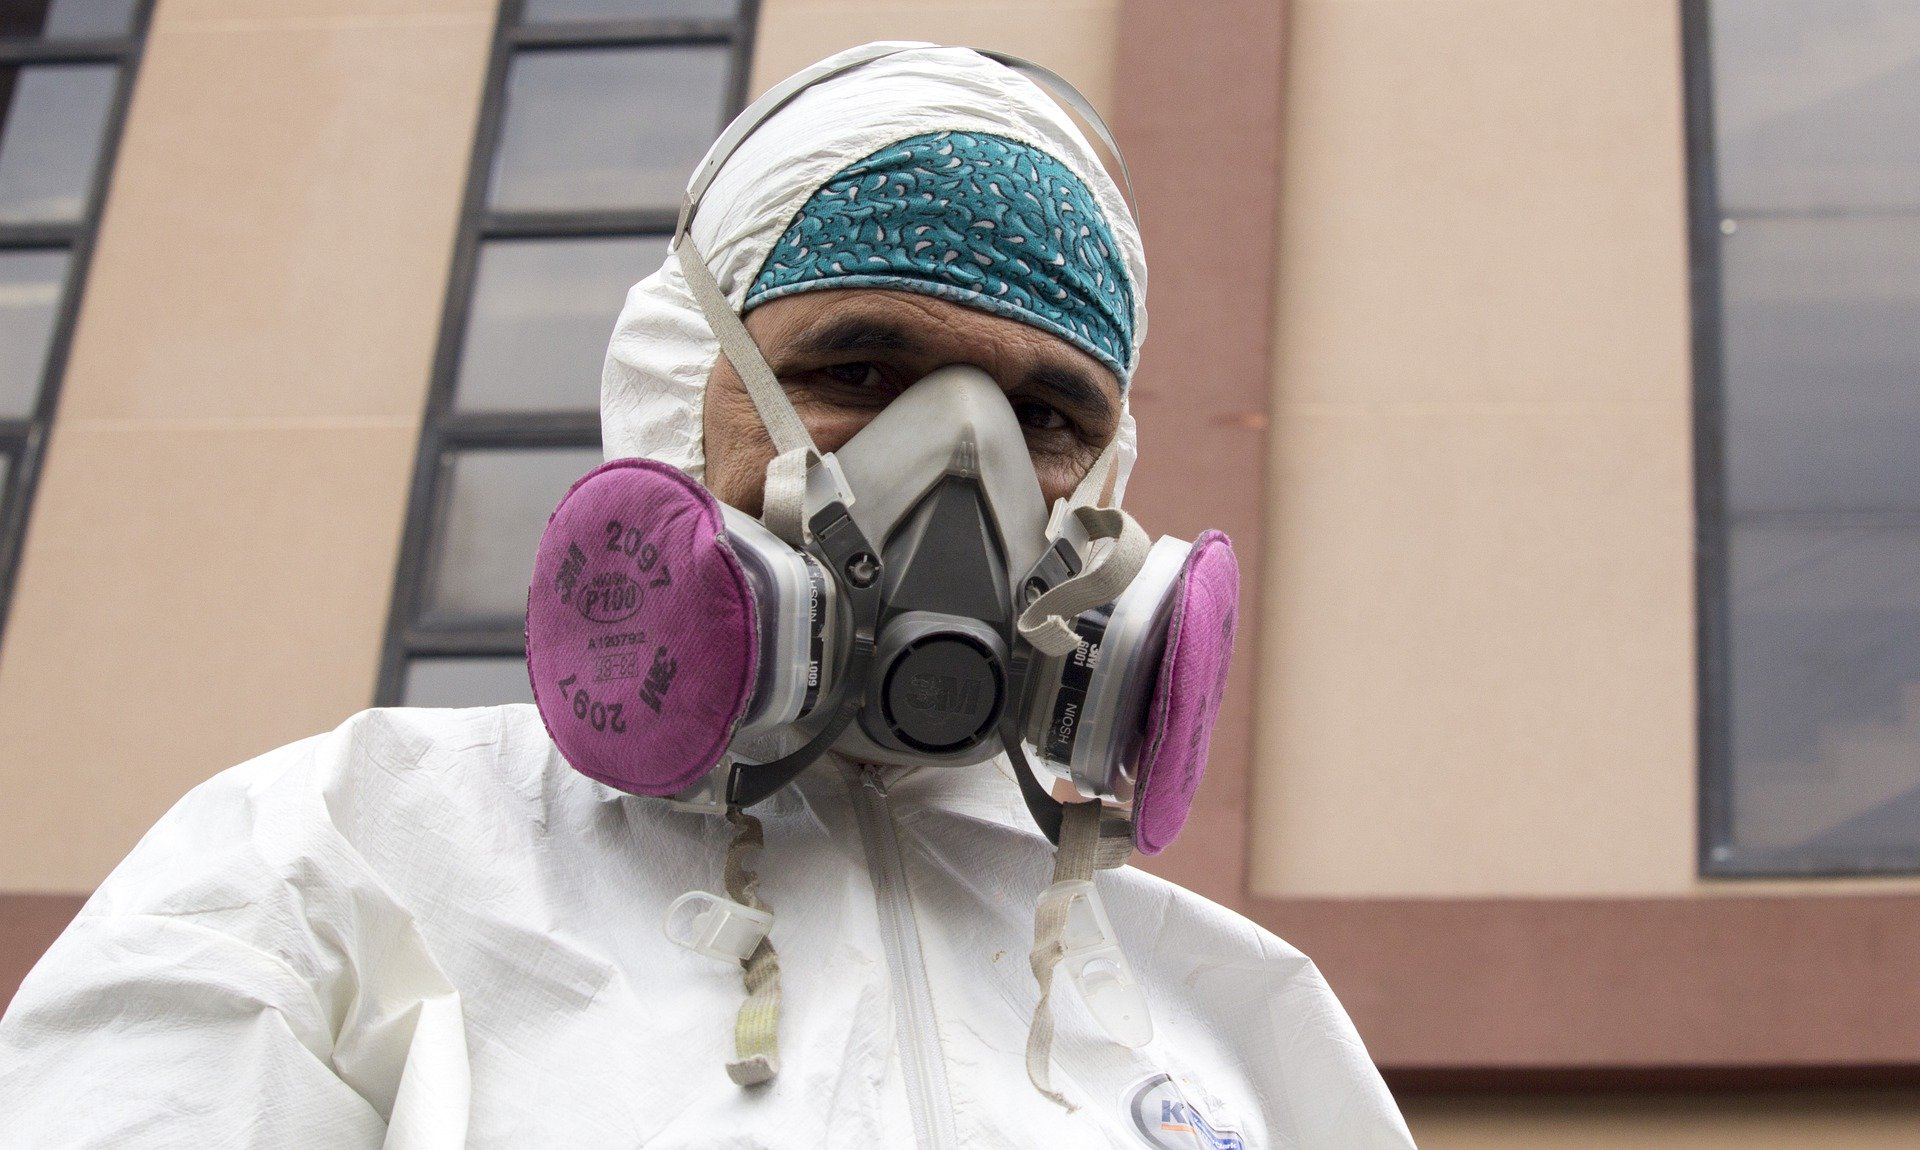 A man wears protective medical clothing and a face mask.